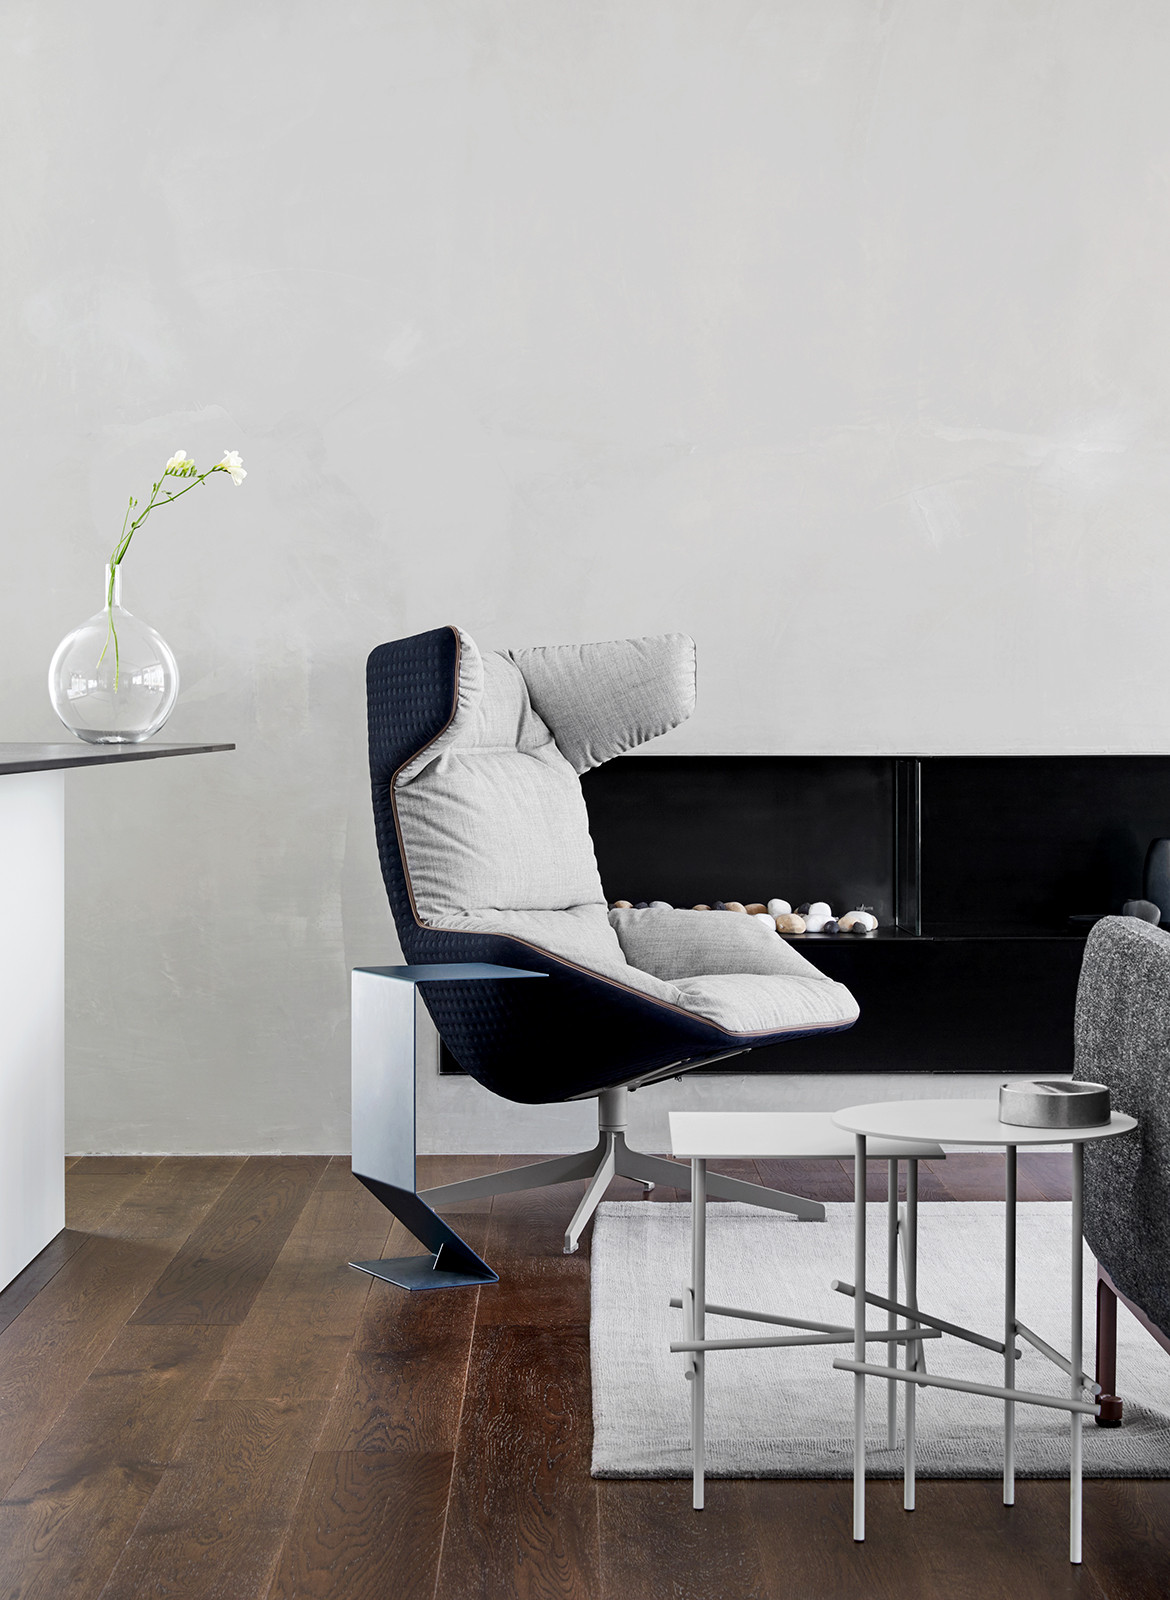 Collection XI K2LD Architects cc Jeremy Wright arm chair fire place